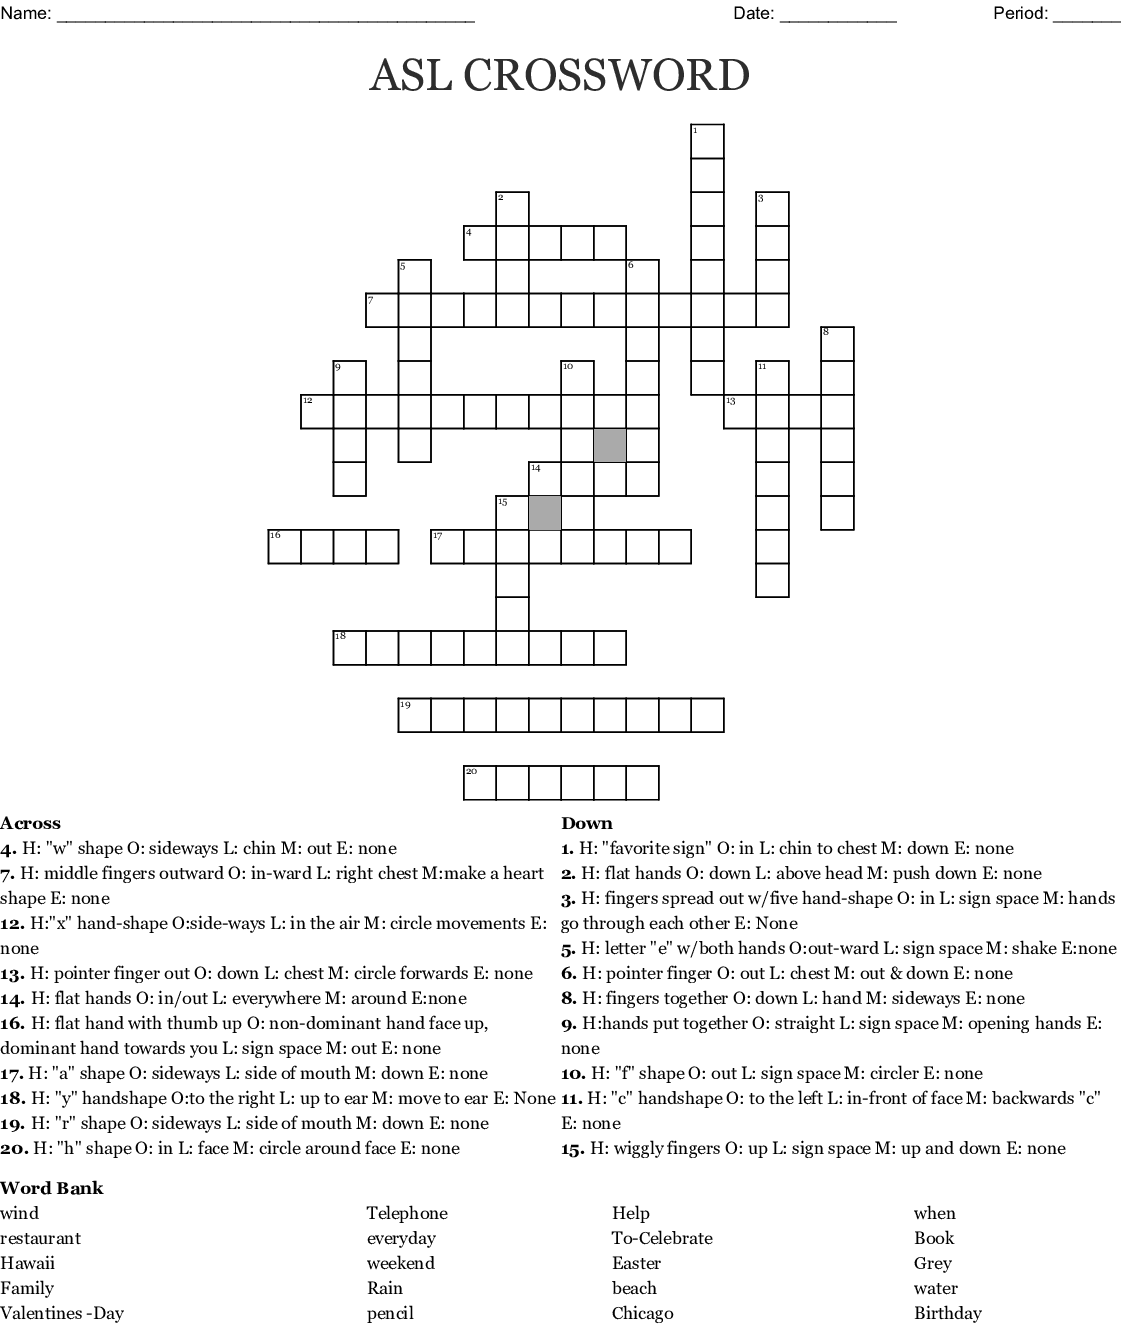 Asl Crossword